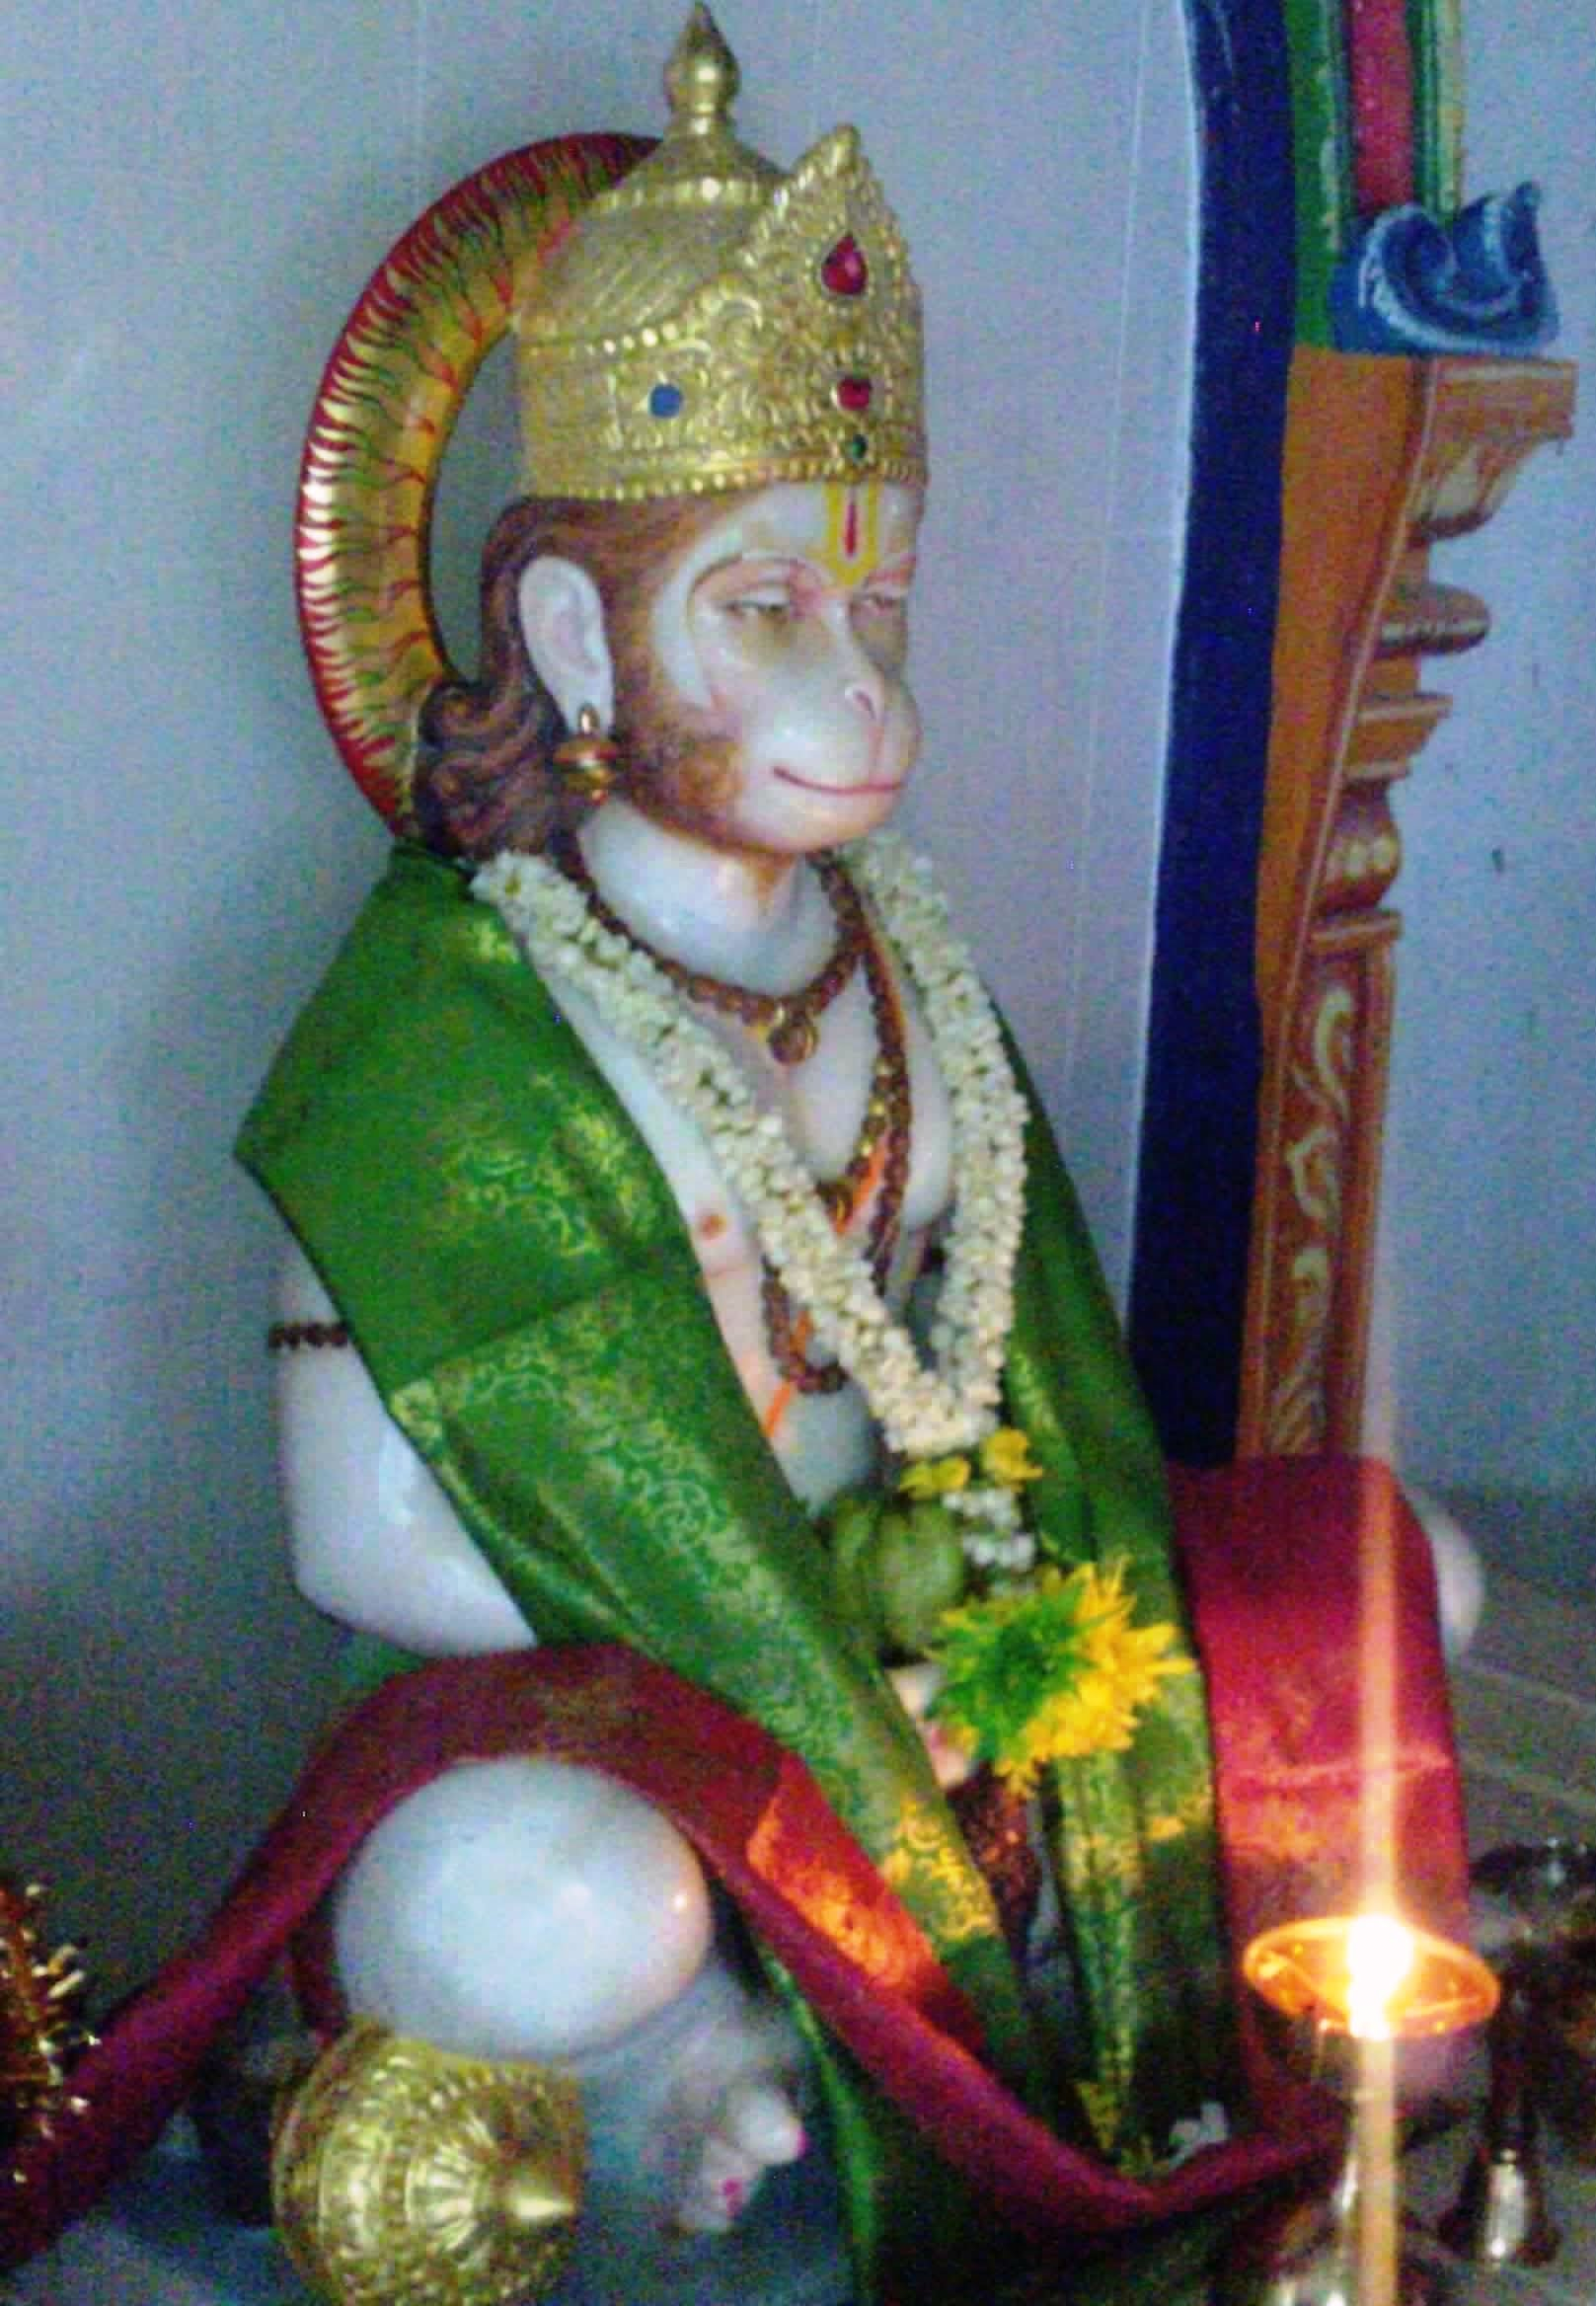 Hanuman ji wallpaper hd google - Real Hanuman Ji Viewing Gallery